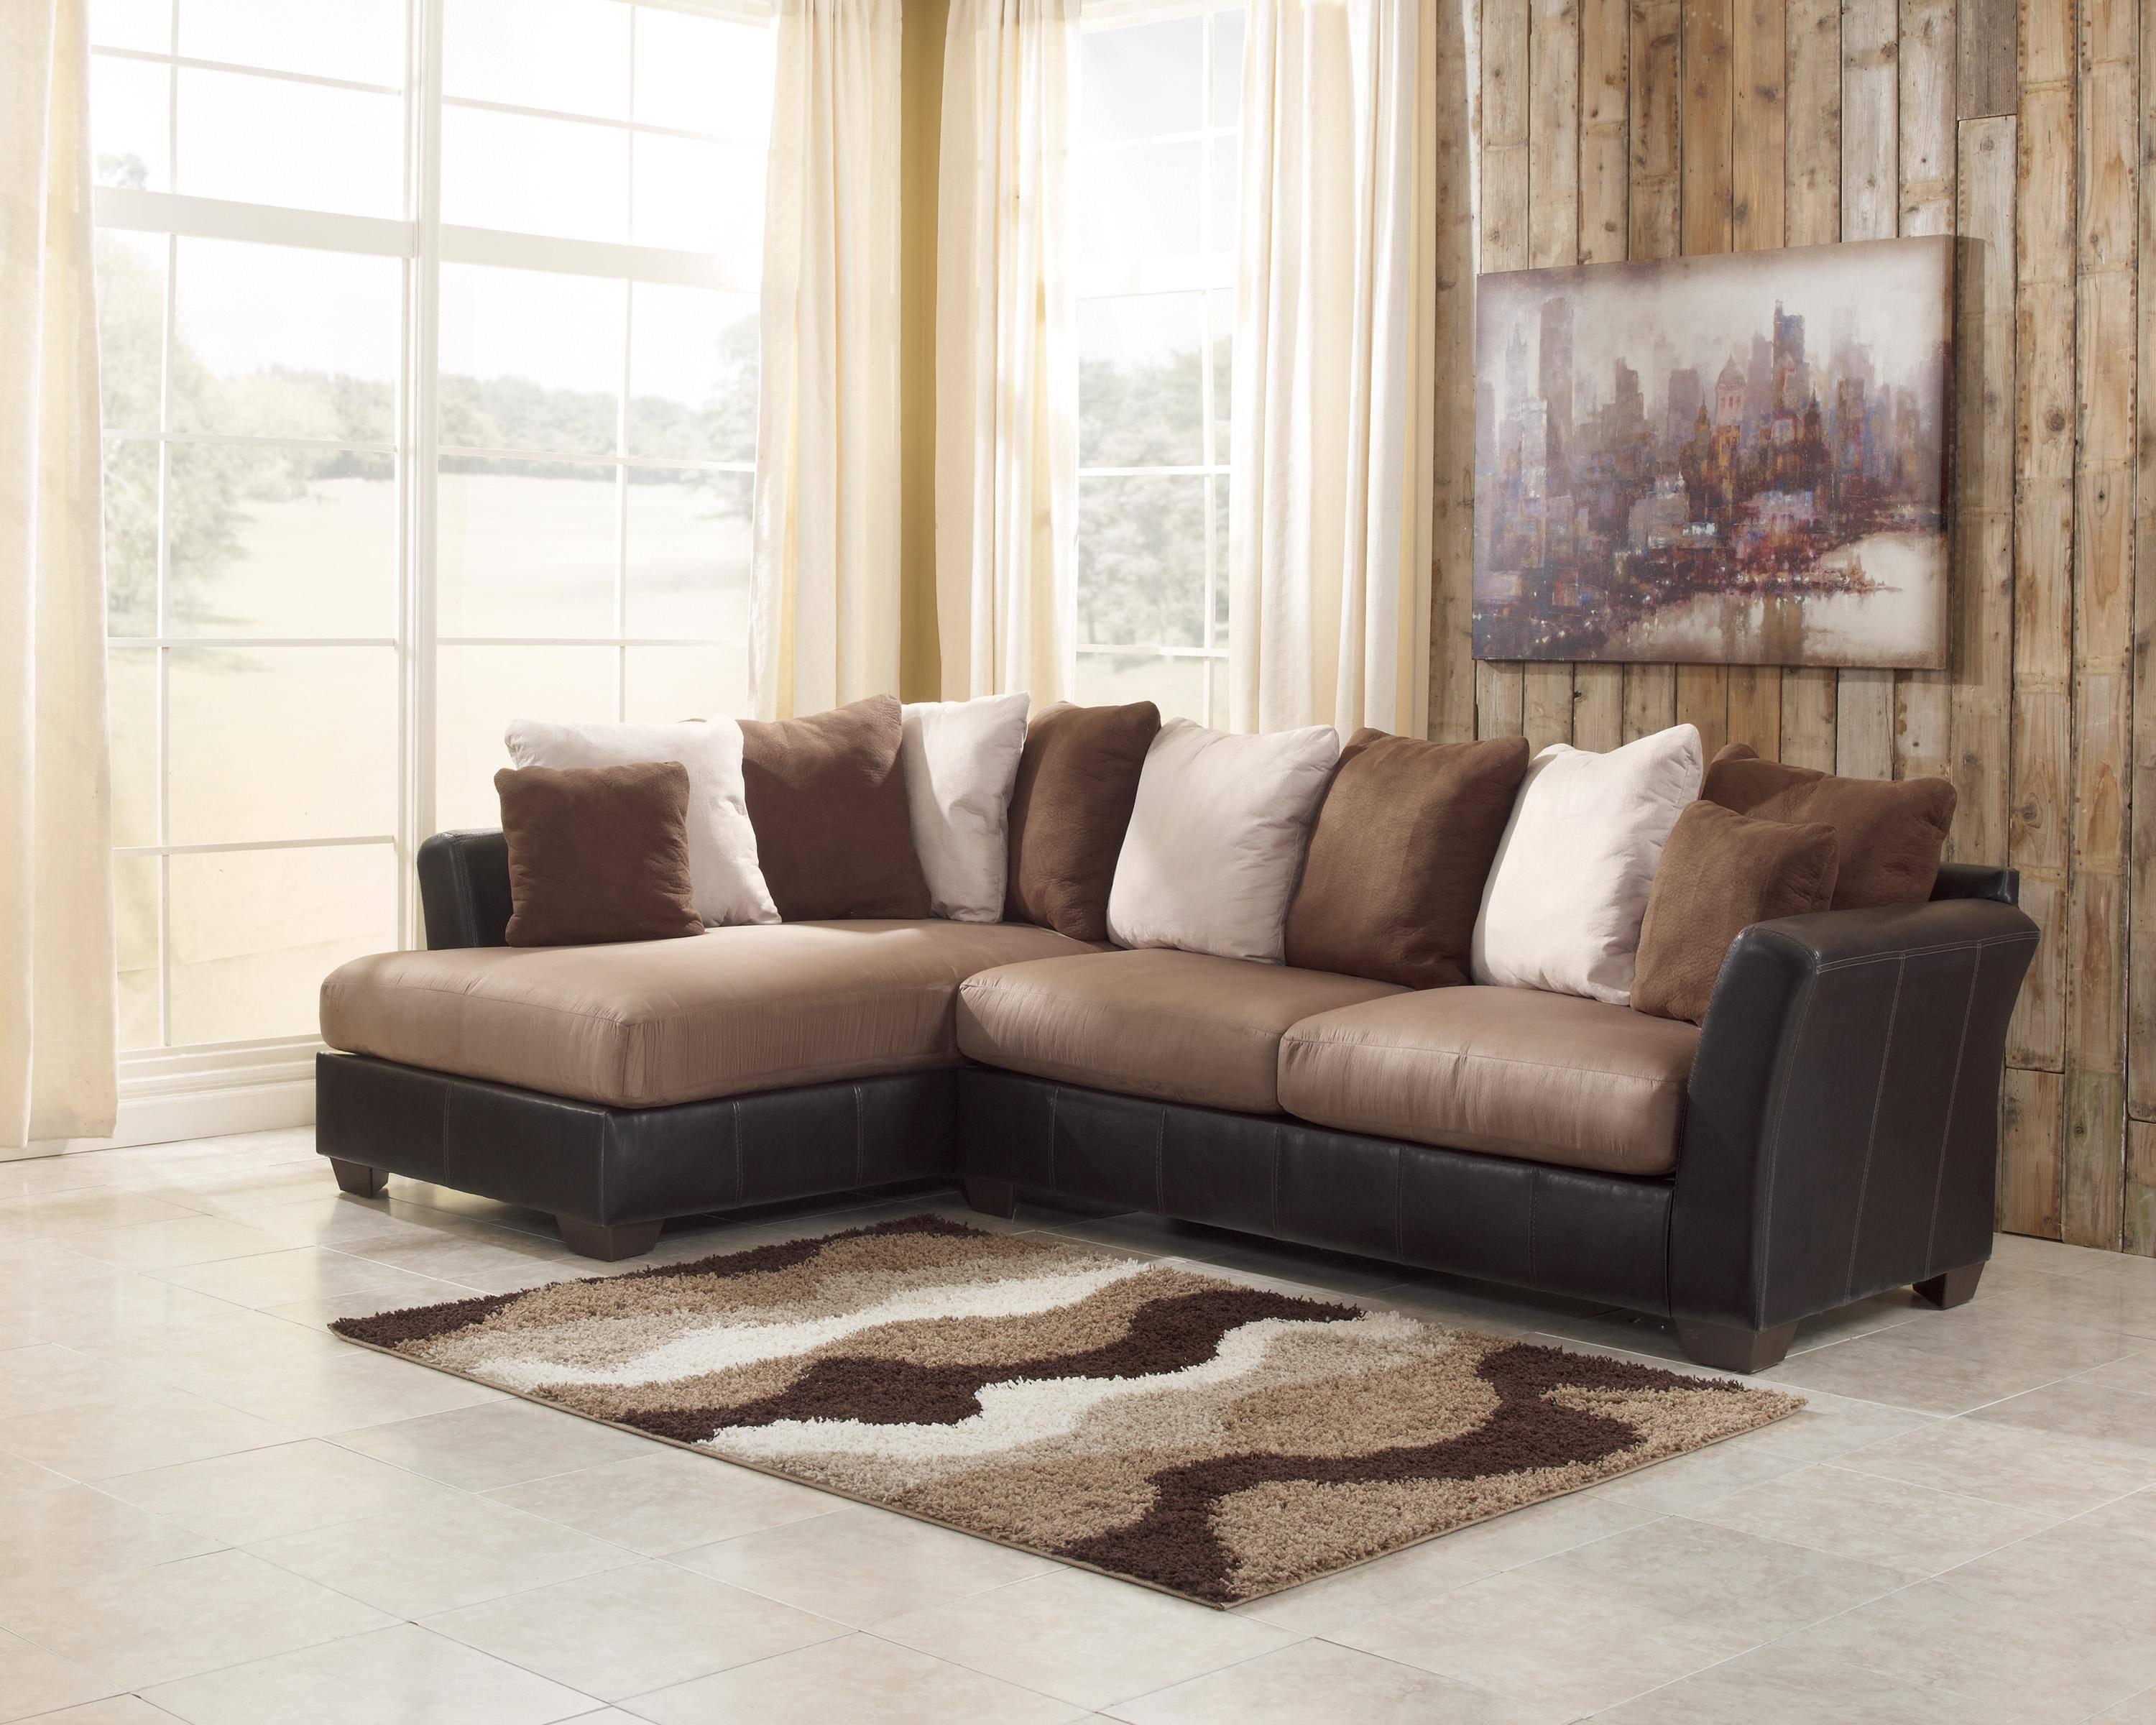 Two Piece Sectional Sofa With Chaise | Tehranmix Decoration Within Sectional Sofa With 2 Chaises (View 29 of 30)